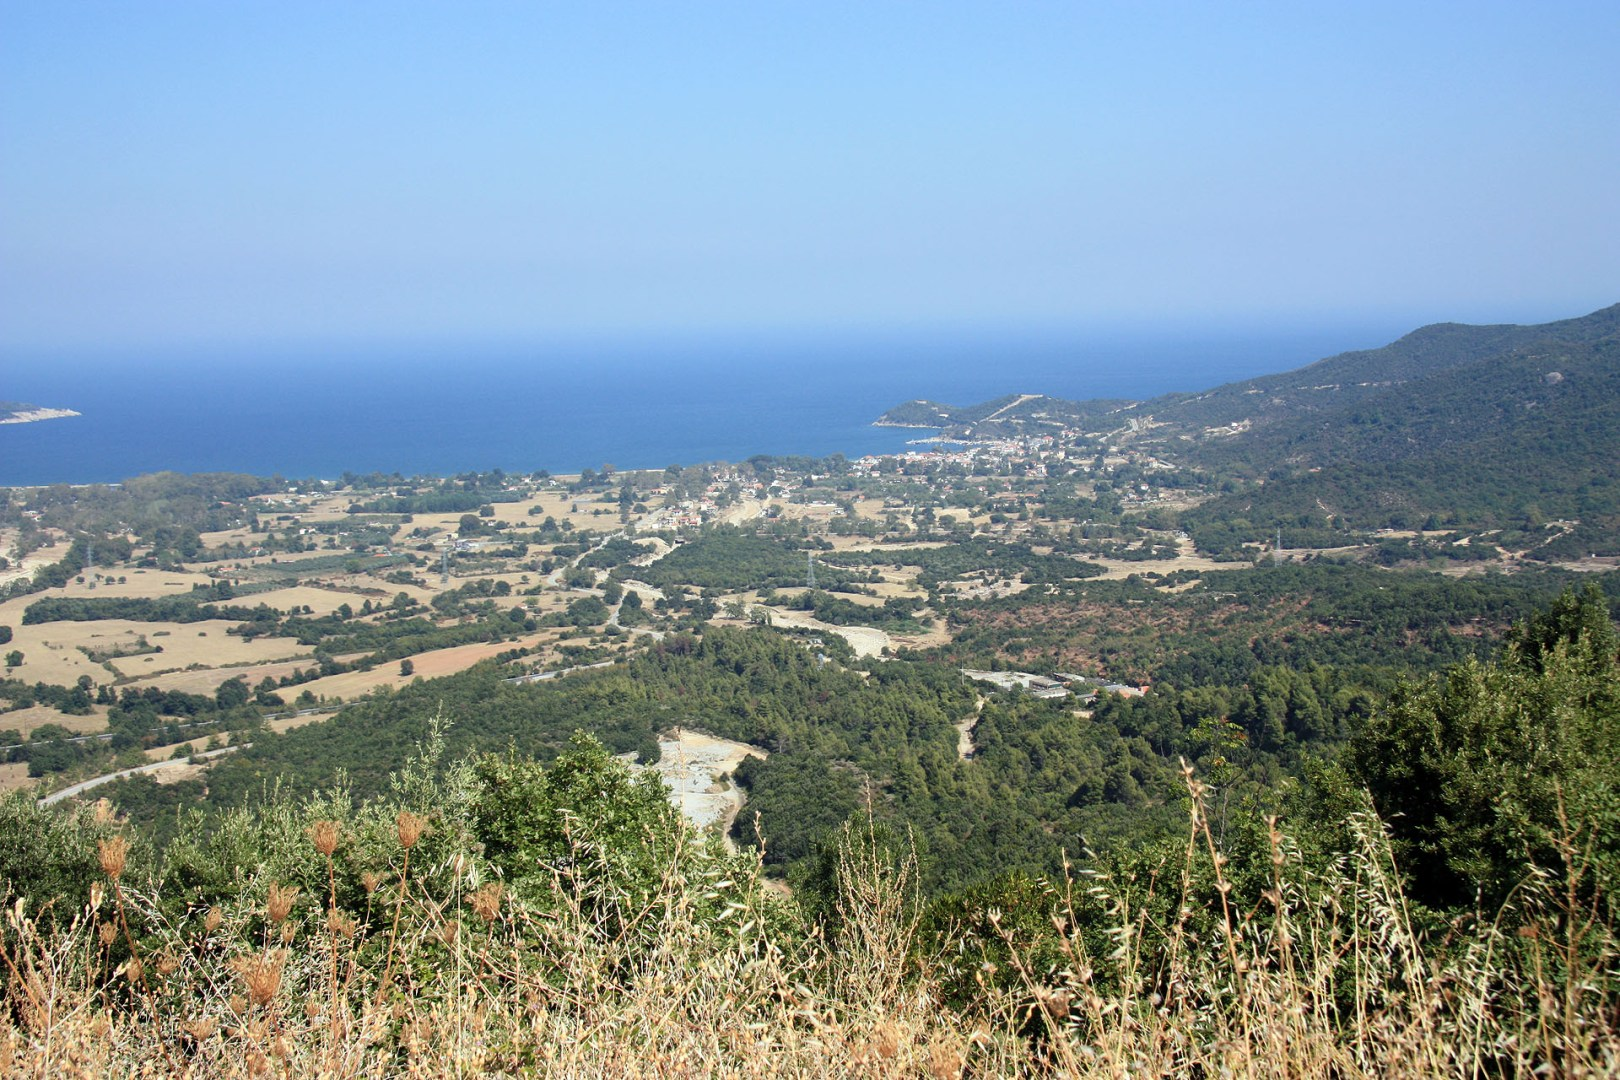 View of Halkidiki